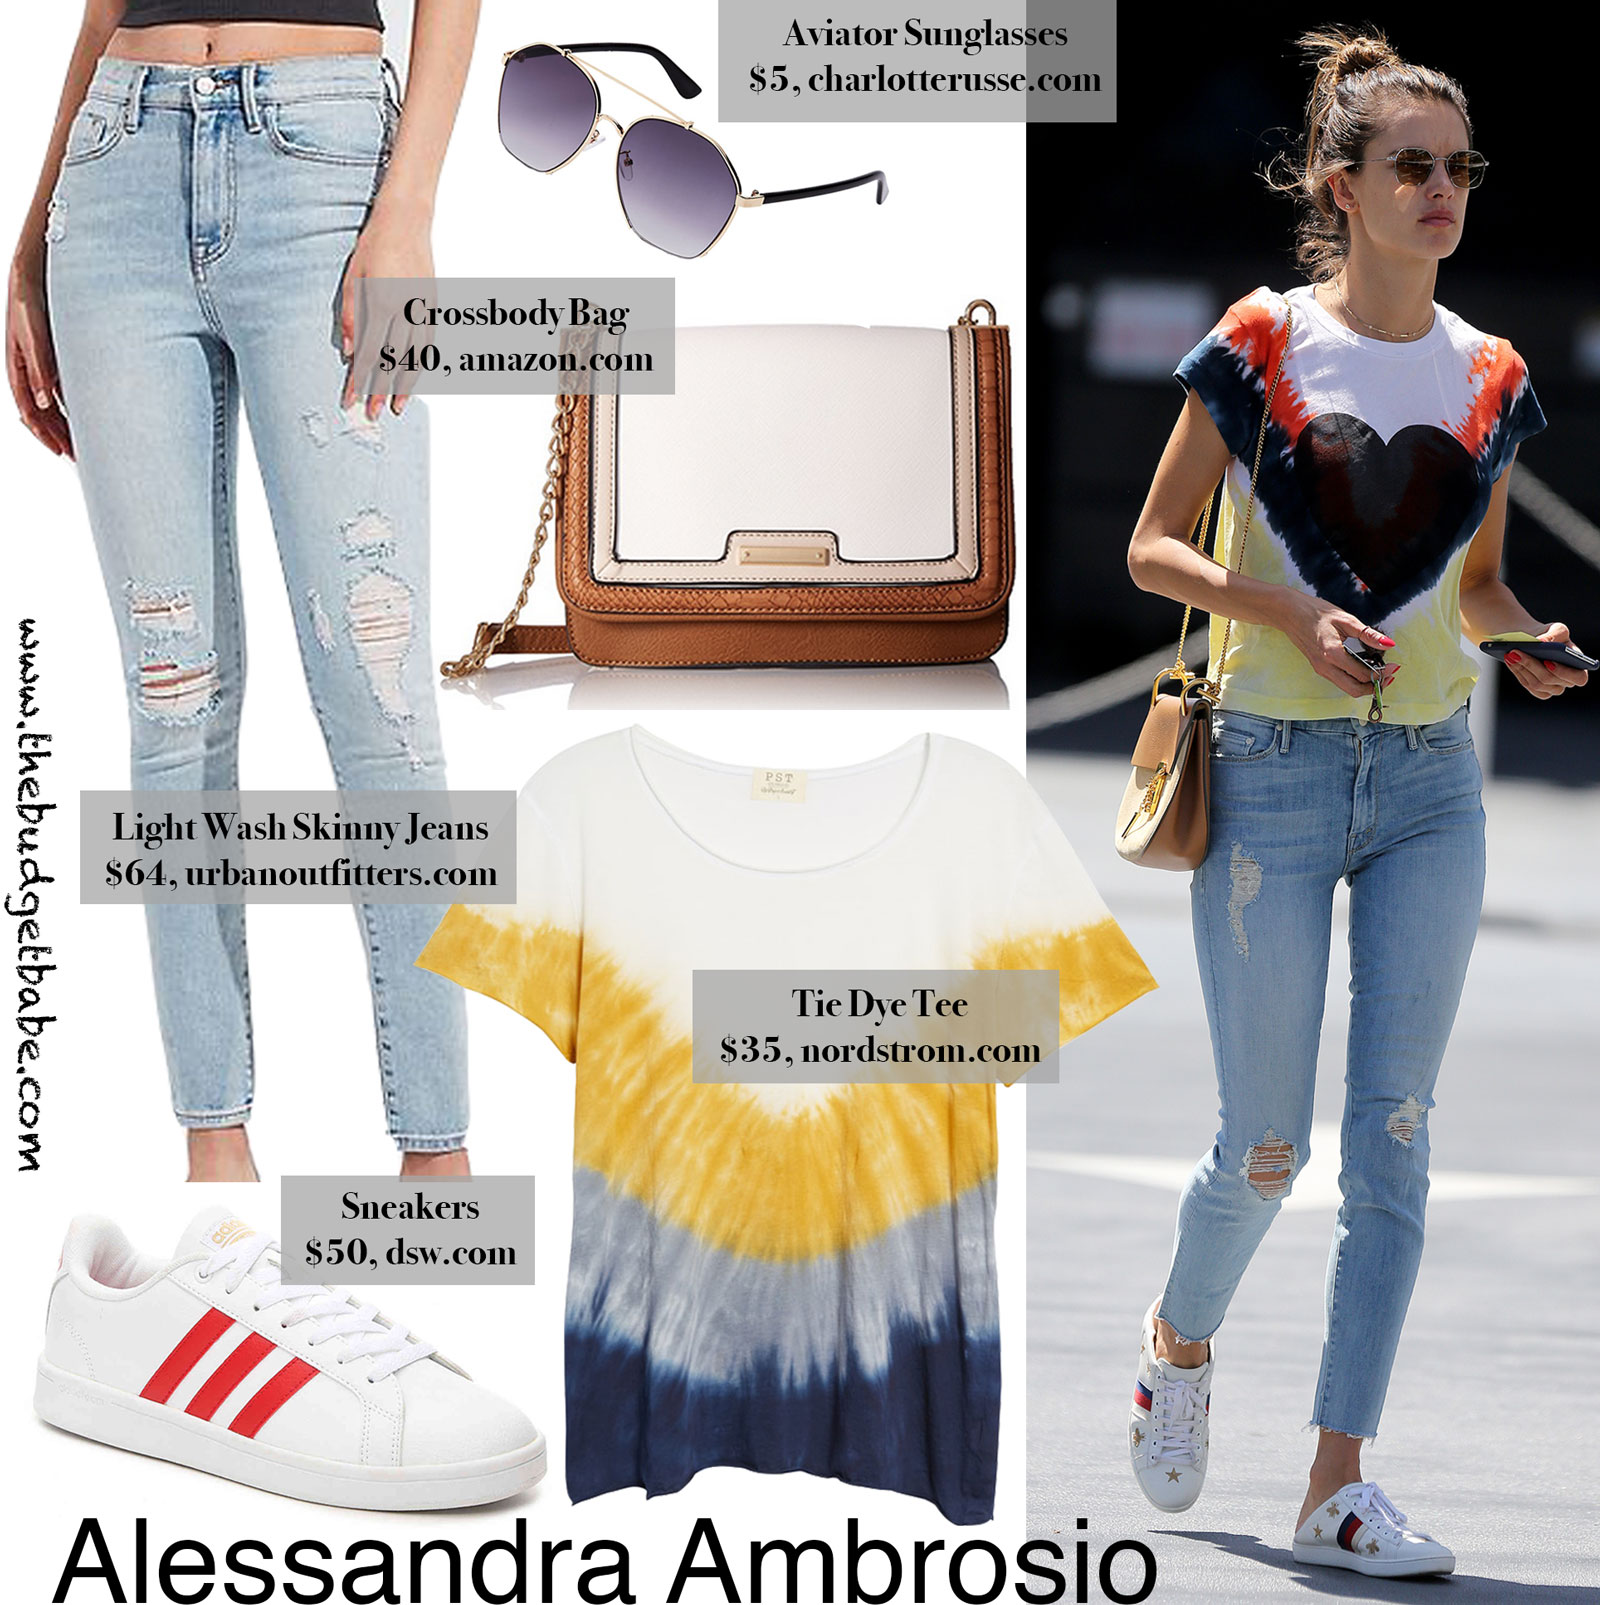 Alessandra Ambrosio Tie Dye Tee Look for Less